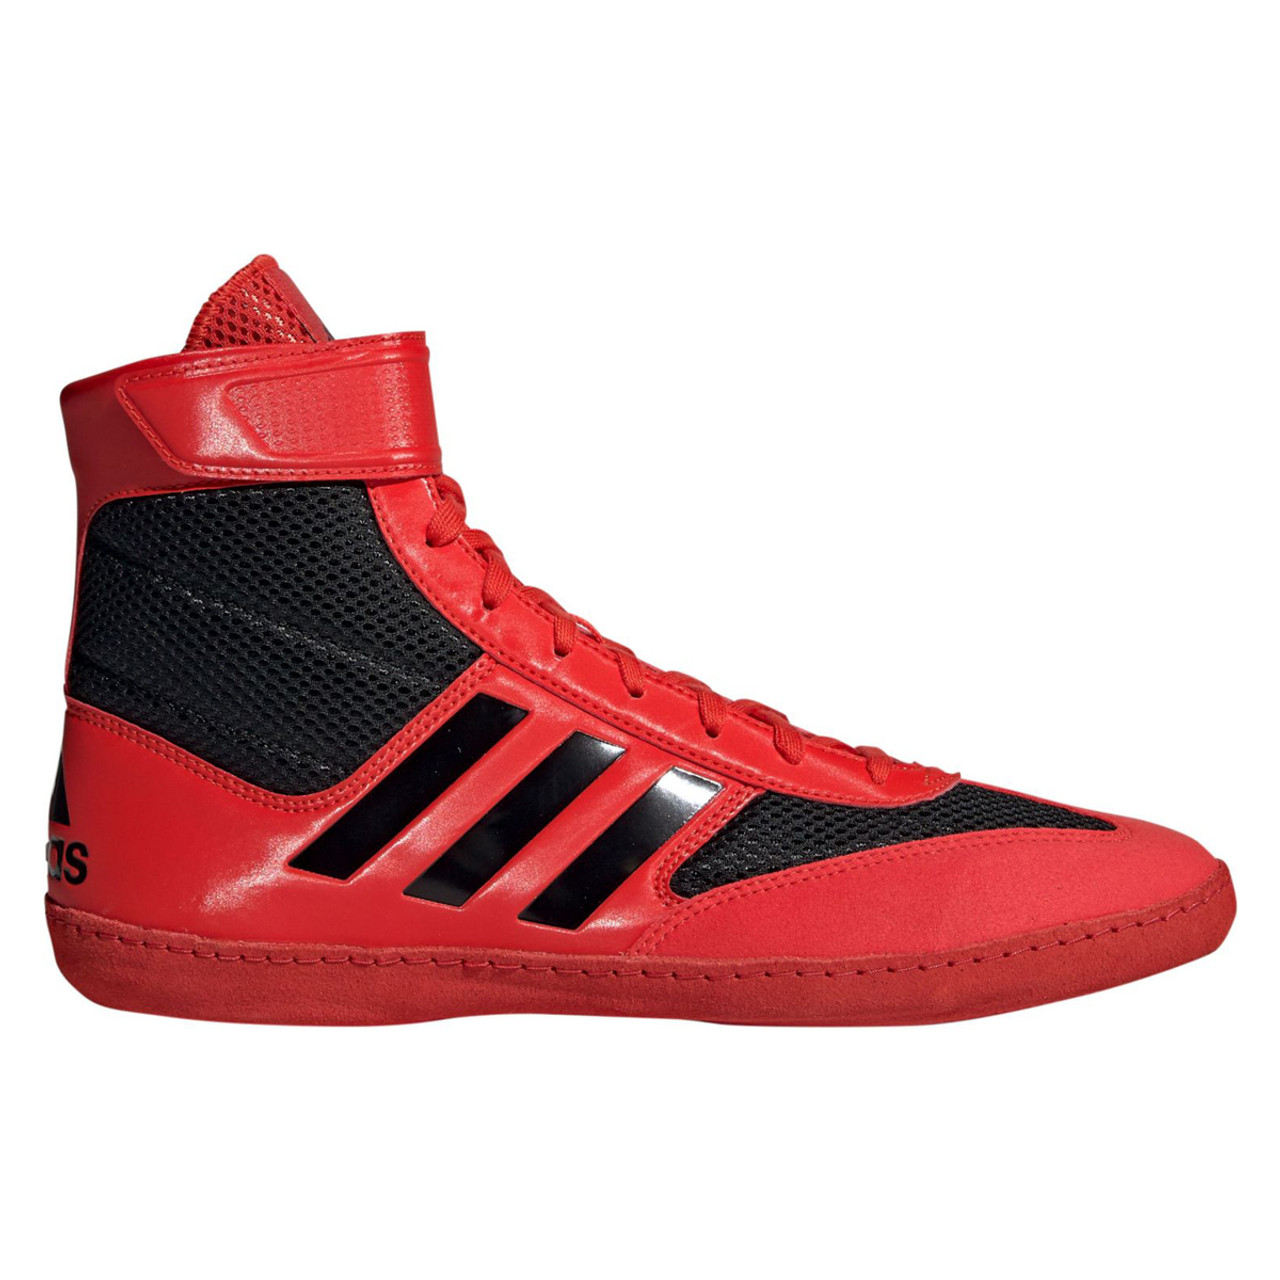 Adidas Combat Speed 5 Adult Wrestling Shoes F99971 Red, Black